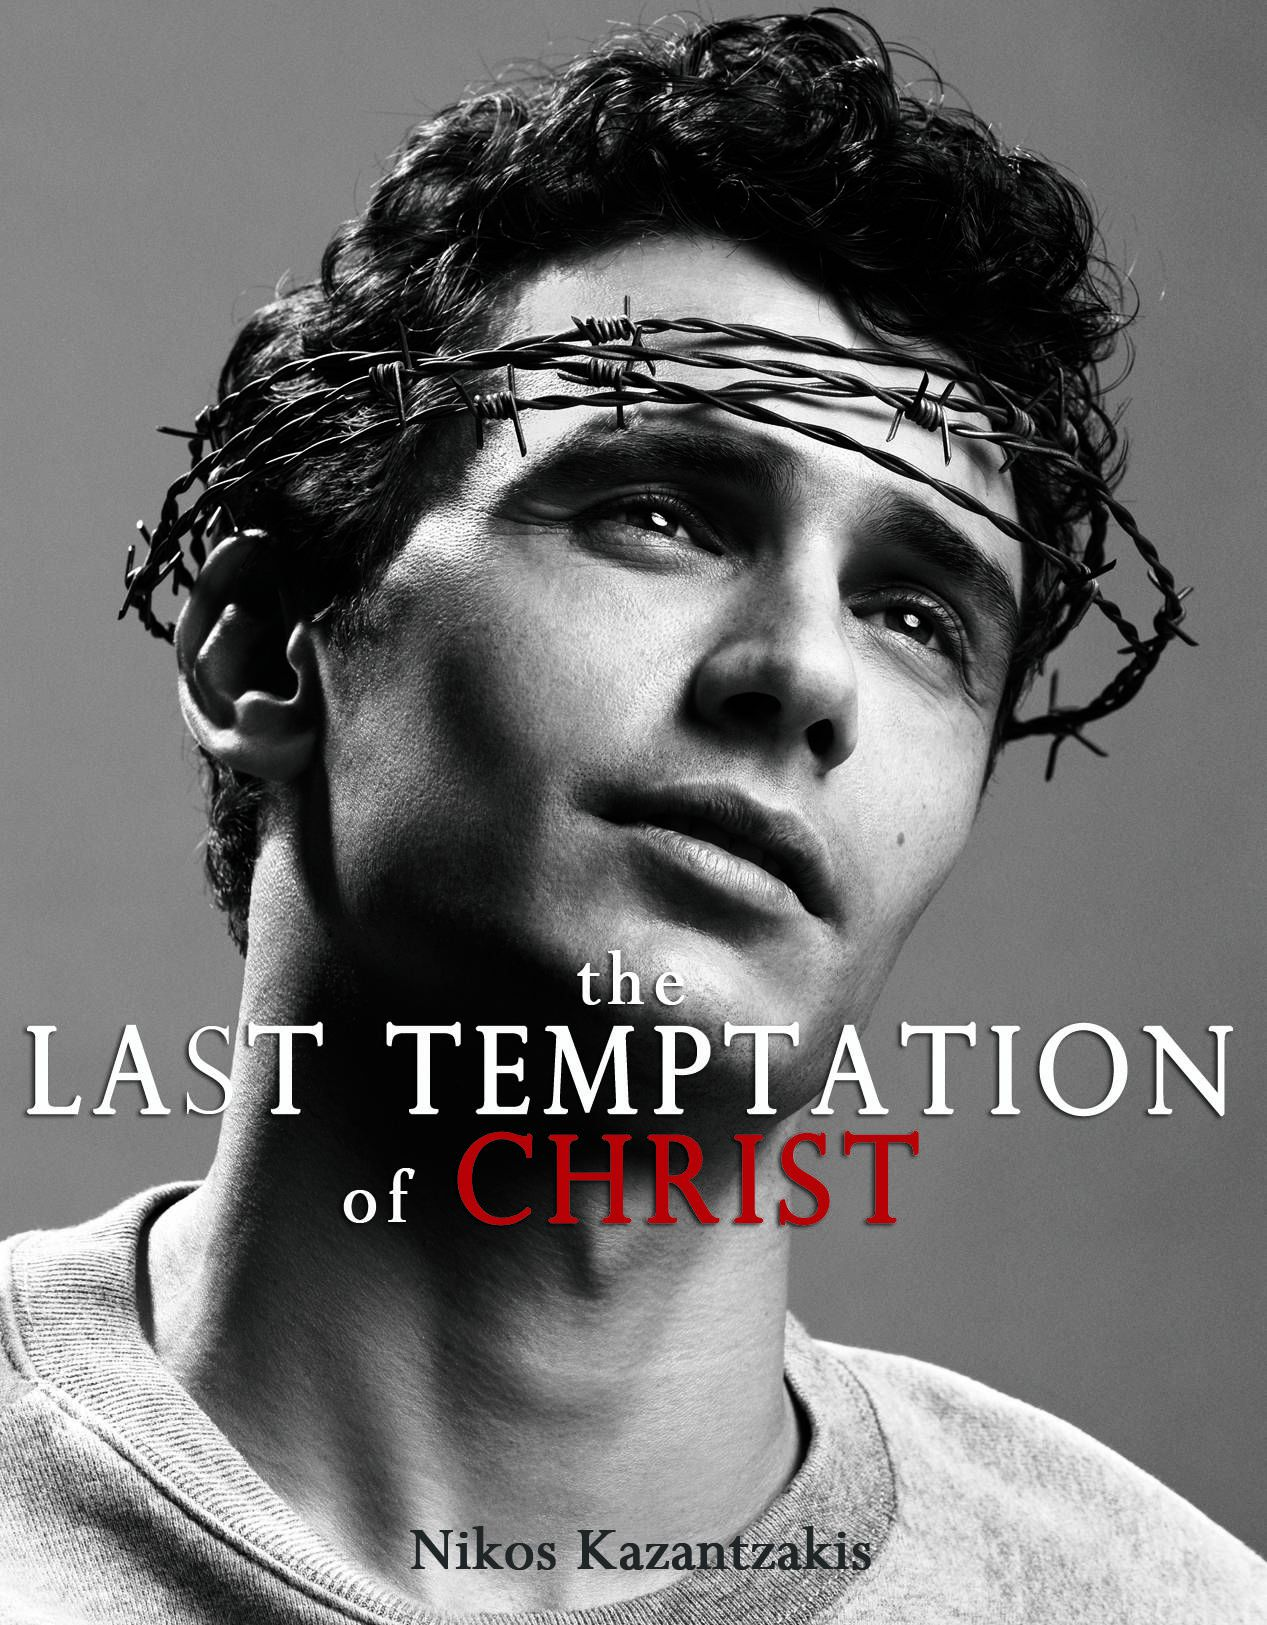 The Last Temptation of Christ featuring James Franco